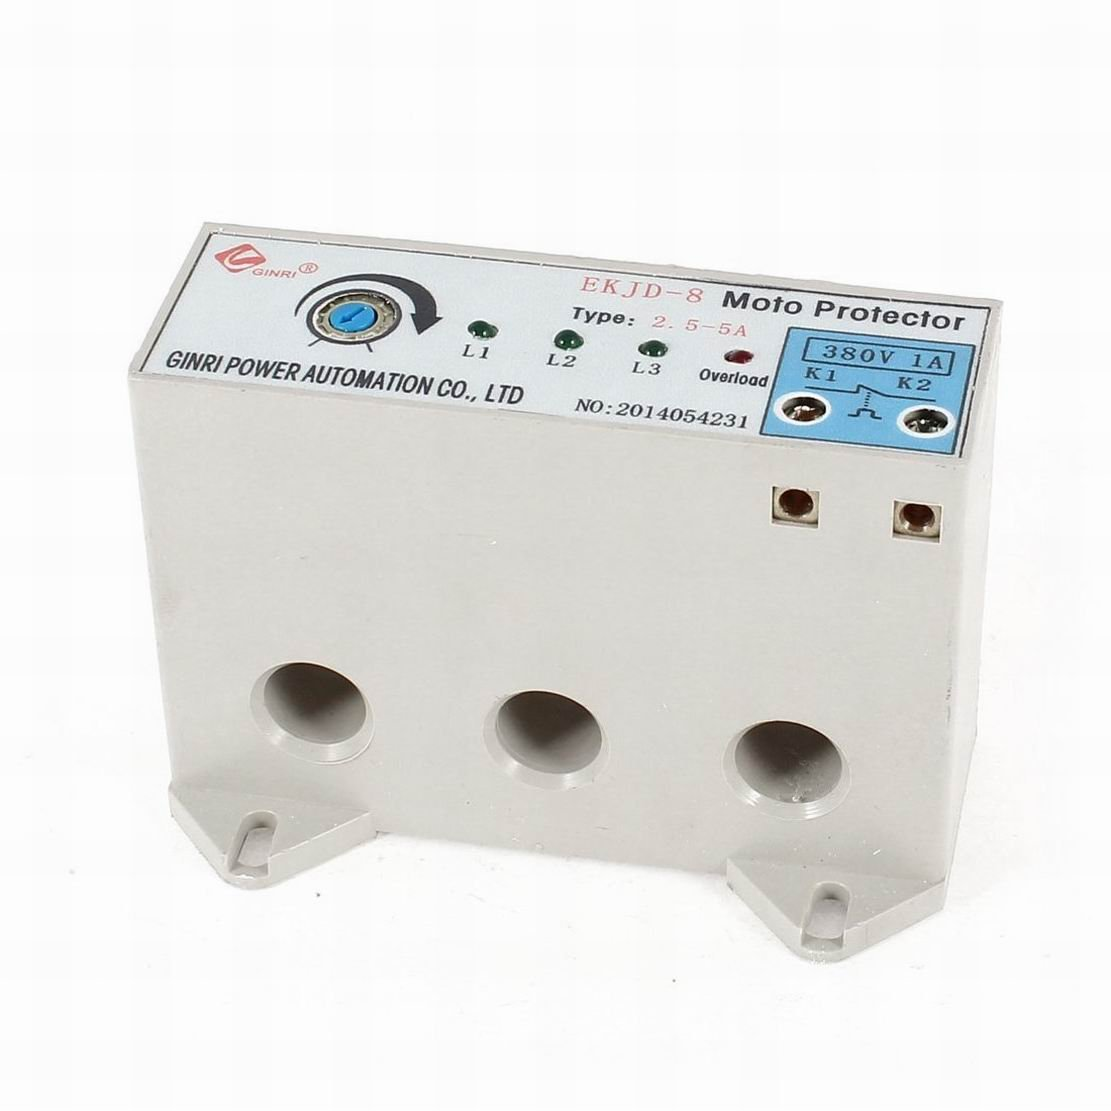 Uptell EKJD-8 3 Phase 2.5-5 Ampere Adjustable Current Motor Circuit Protector